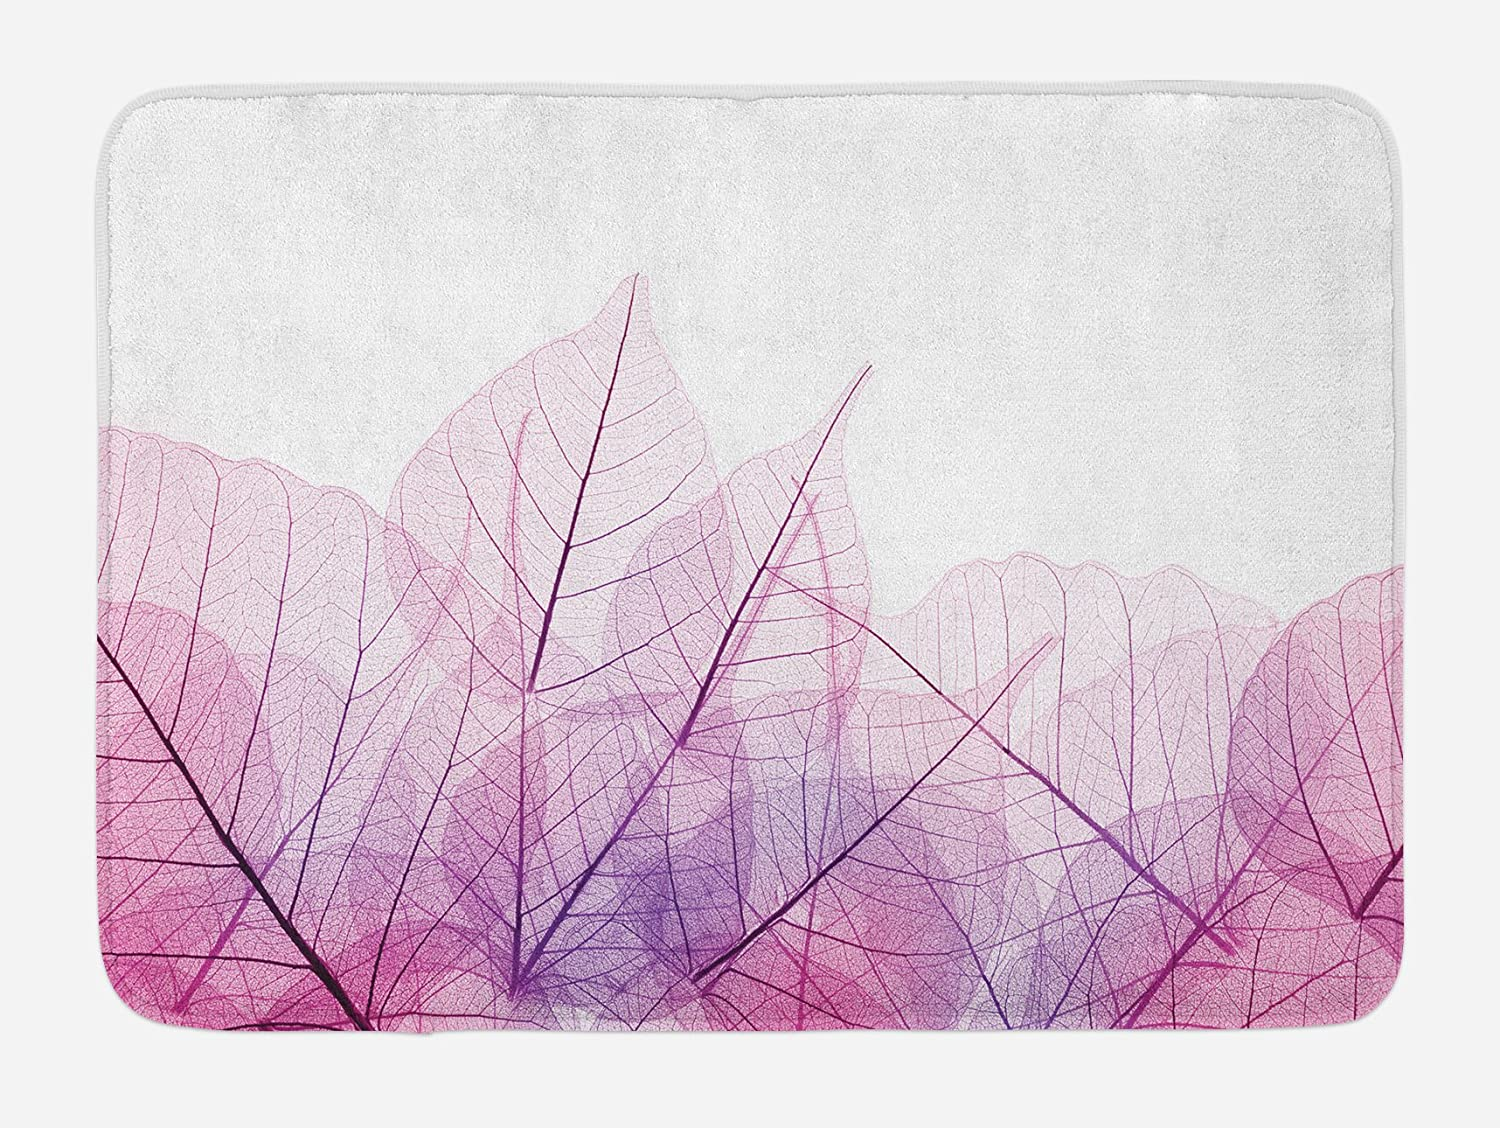 Ambesonne Leaf Bath Mat, Skeleton Spring Flowers with Contemporary Theme Fantasy Fashion Image, Plush Bathroom Decor Mat with Non Slip Backing, 29.5